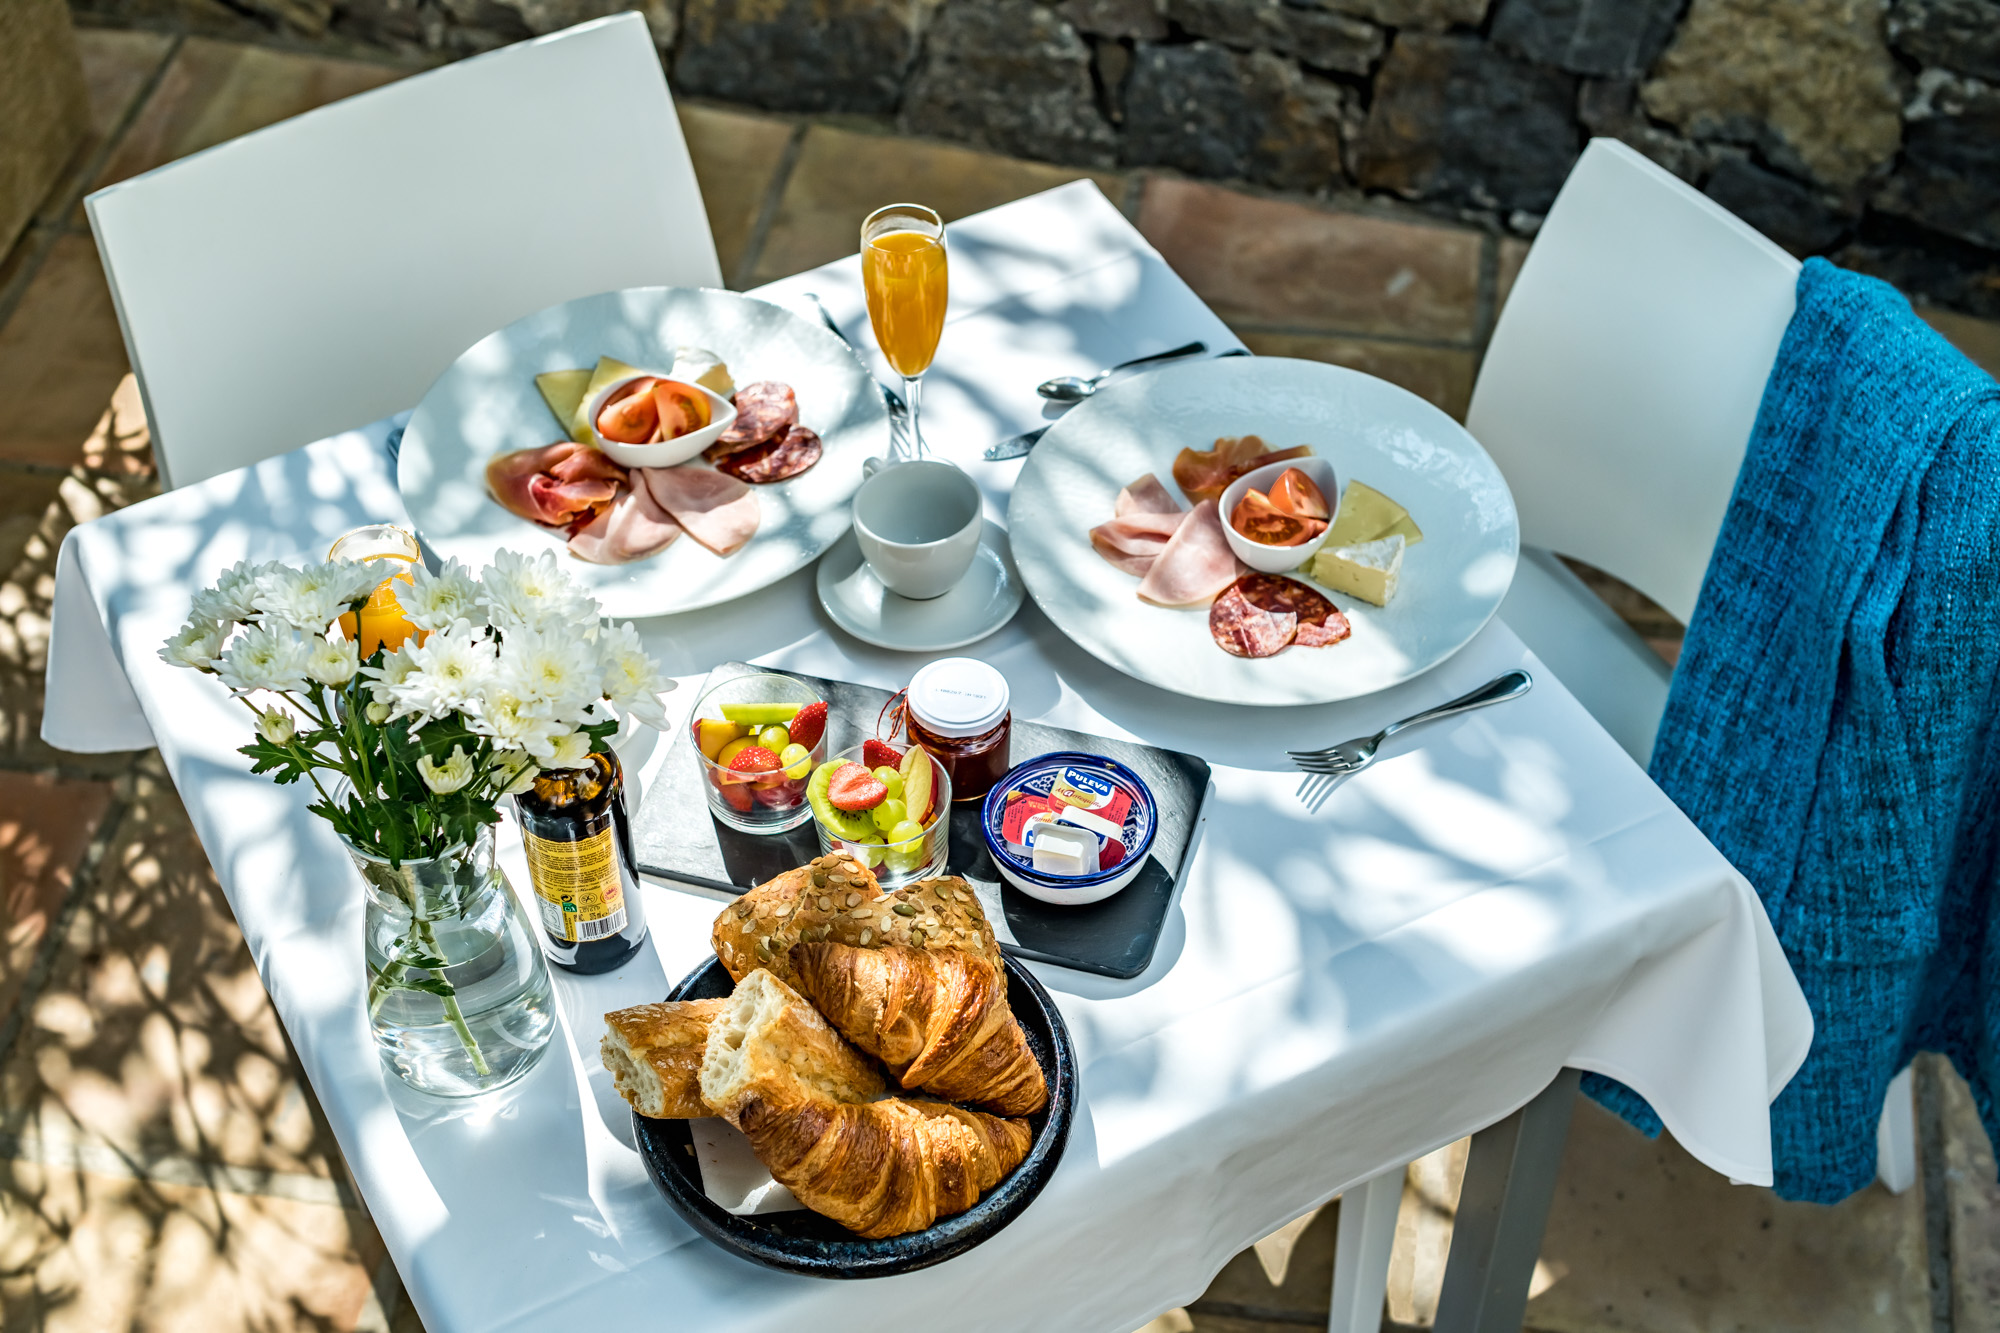 La Costera de Altea breakfast